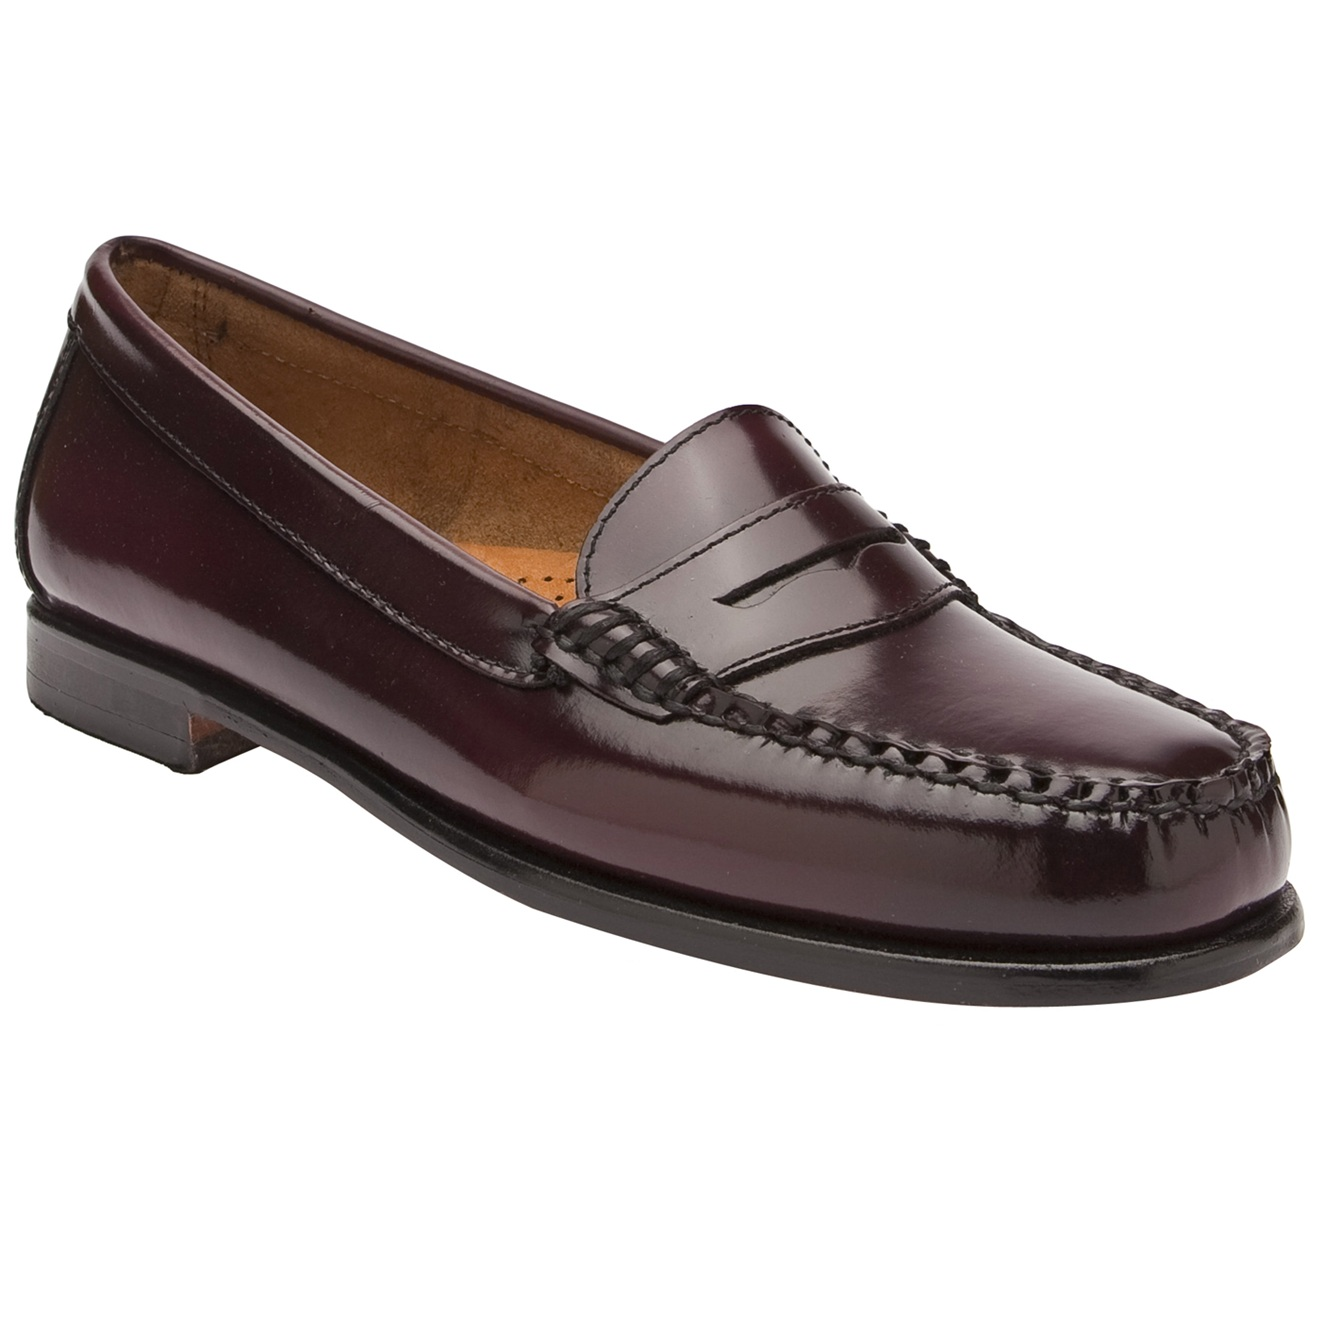 gh bass amp co classic penny loafer in purple burgundy